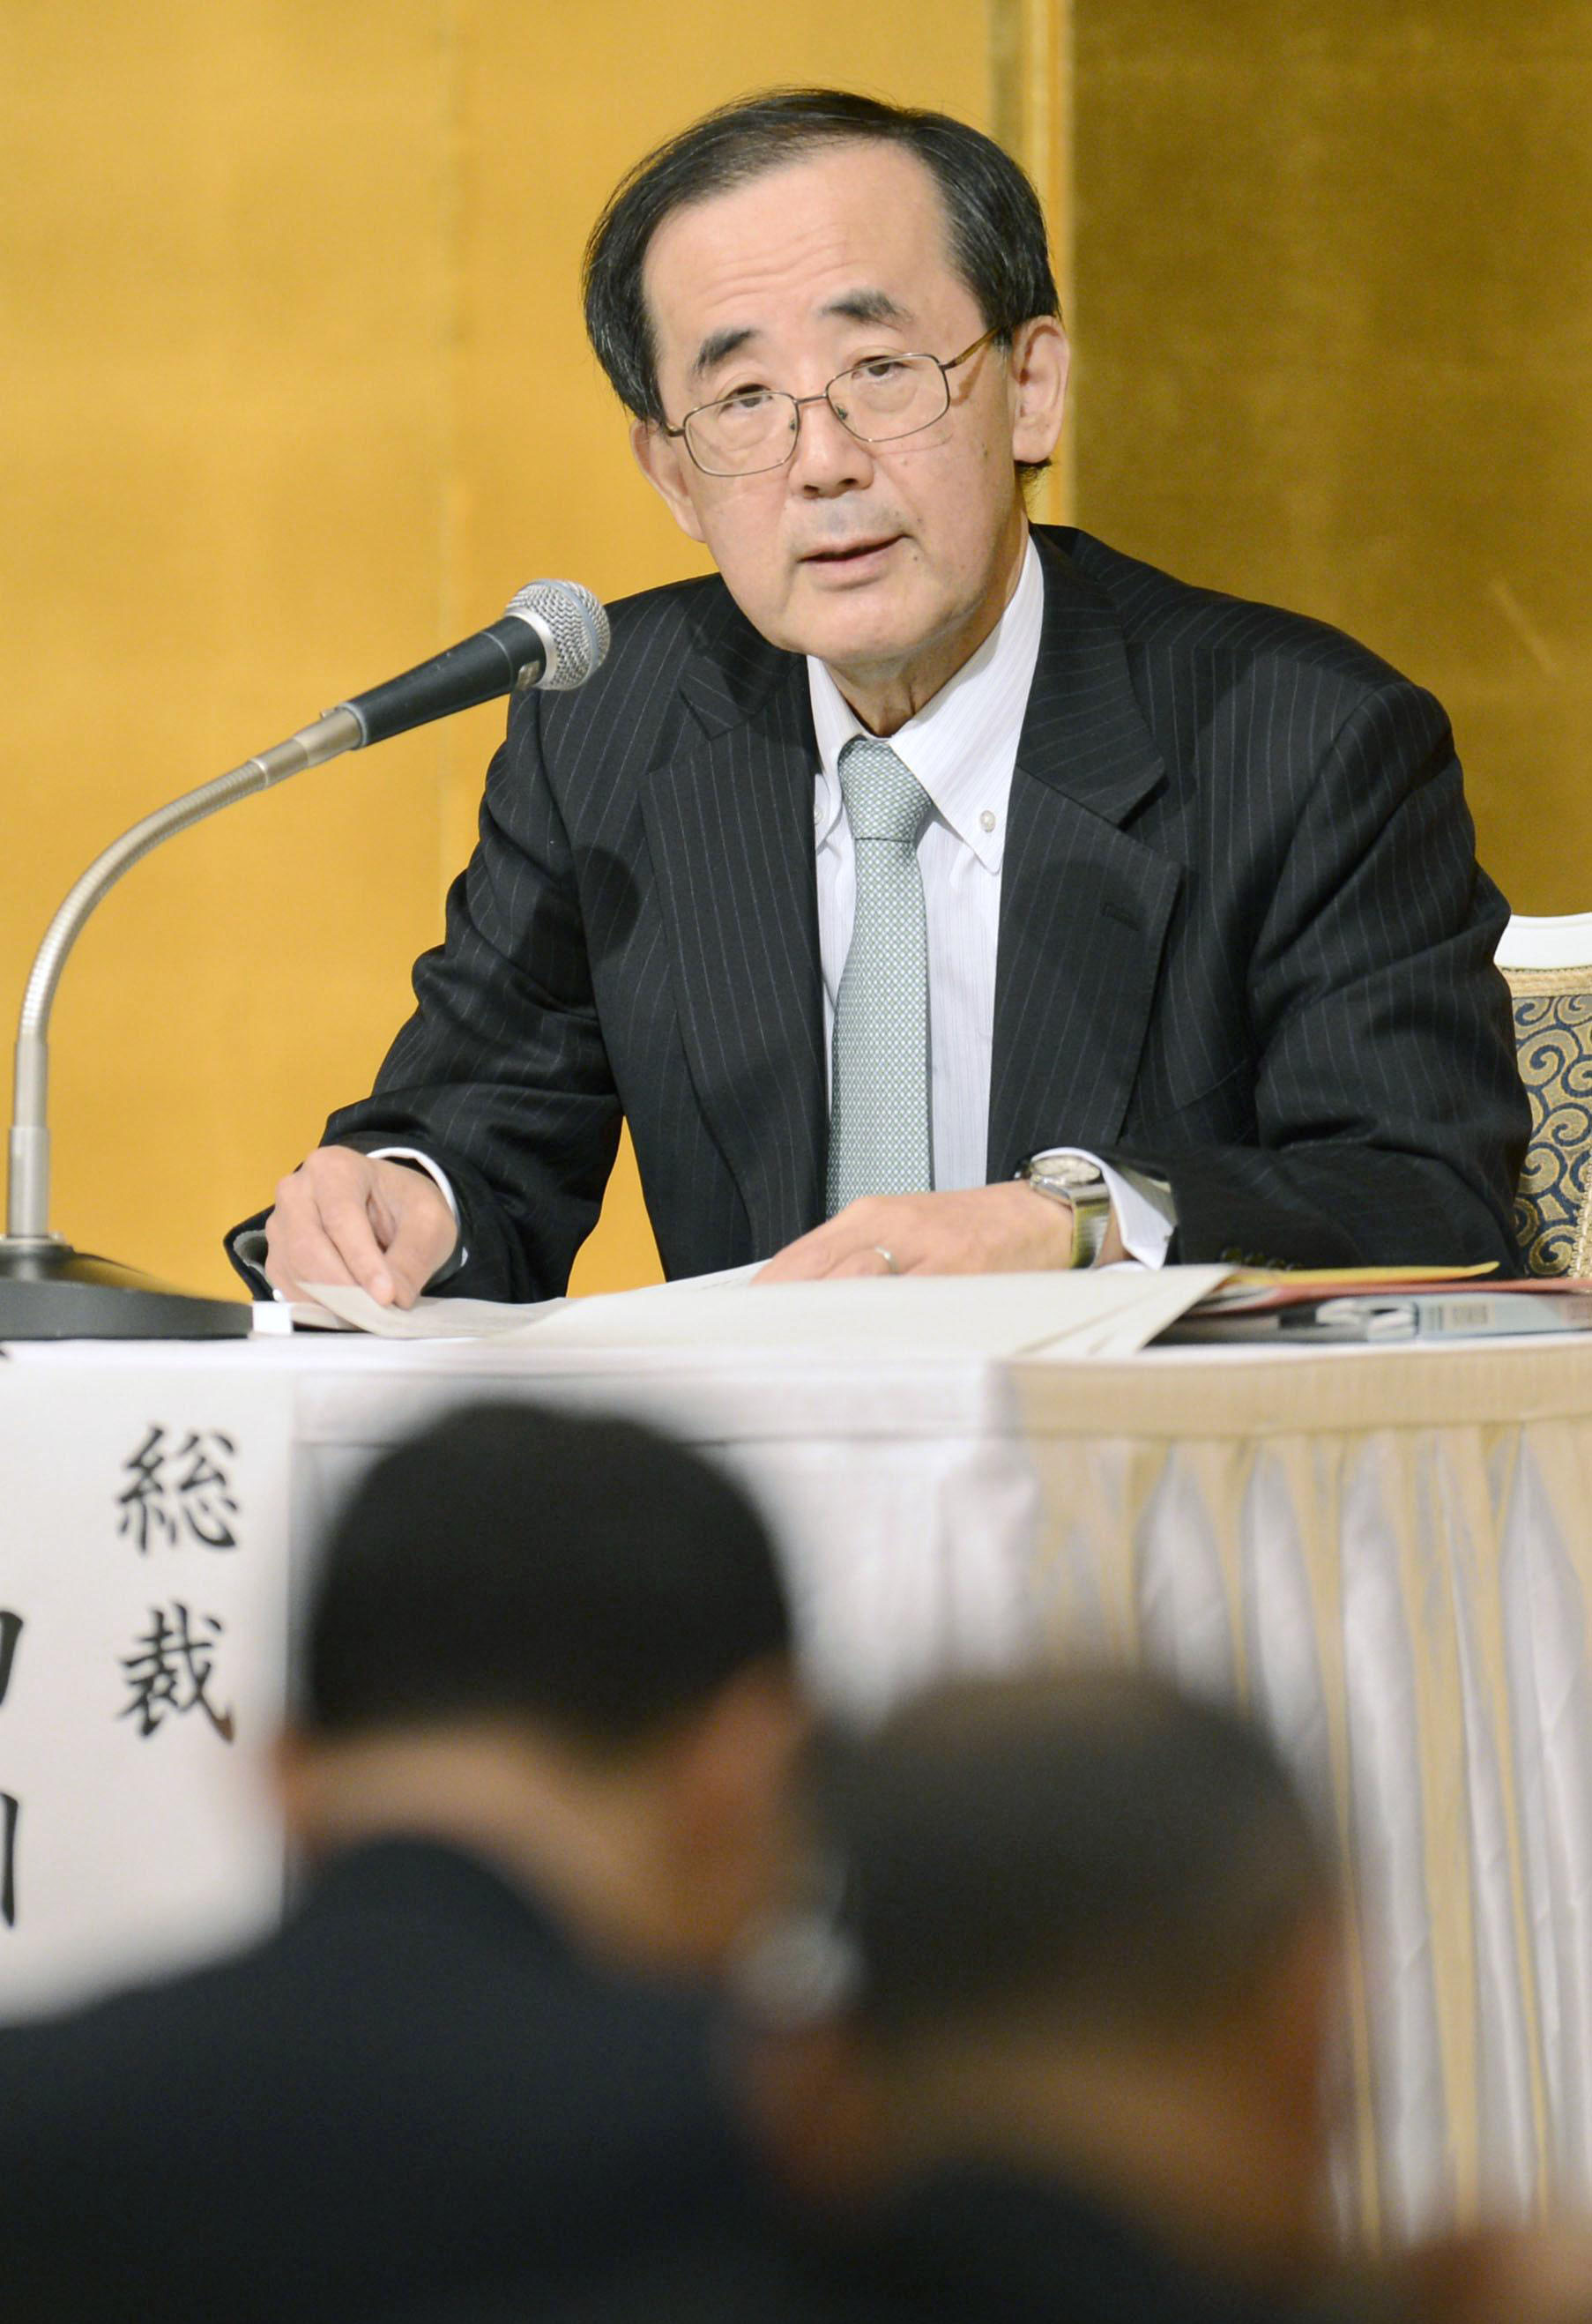 Stay the course: Bank of Japan Gov. Masaaki Shirakawa gives a lecture in Nagoya on Monday. | KYODO